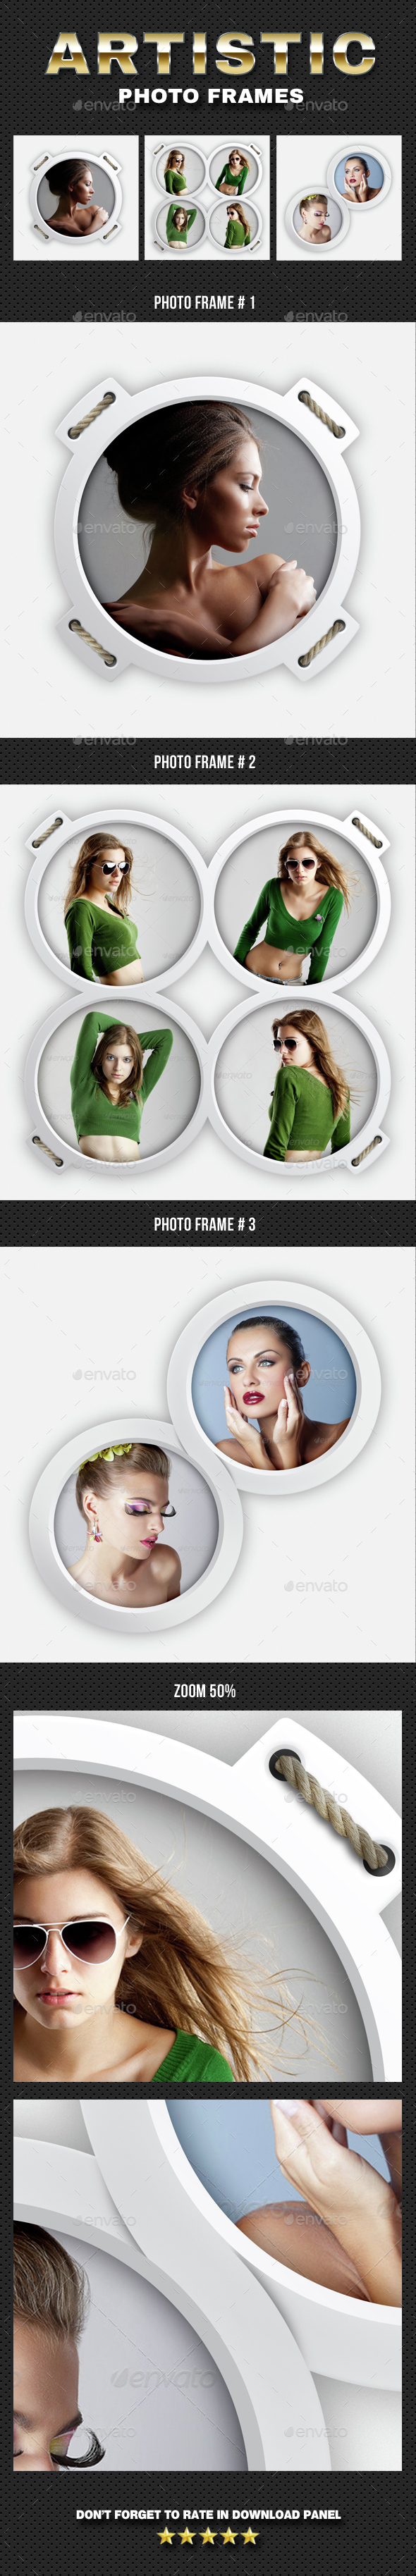 Artistic Photo Frame 05 - Photo Templates Graphics